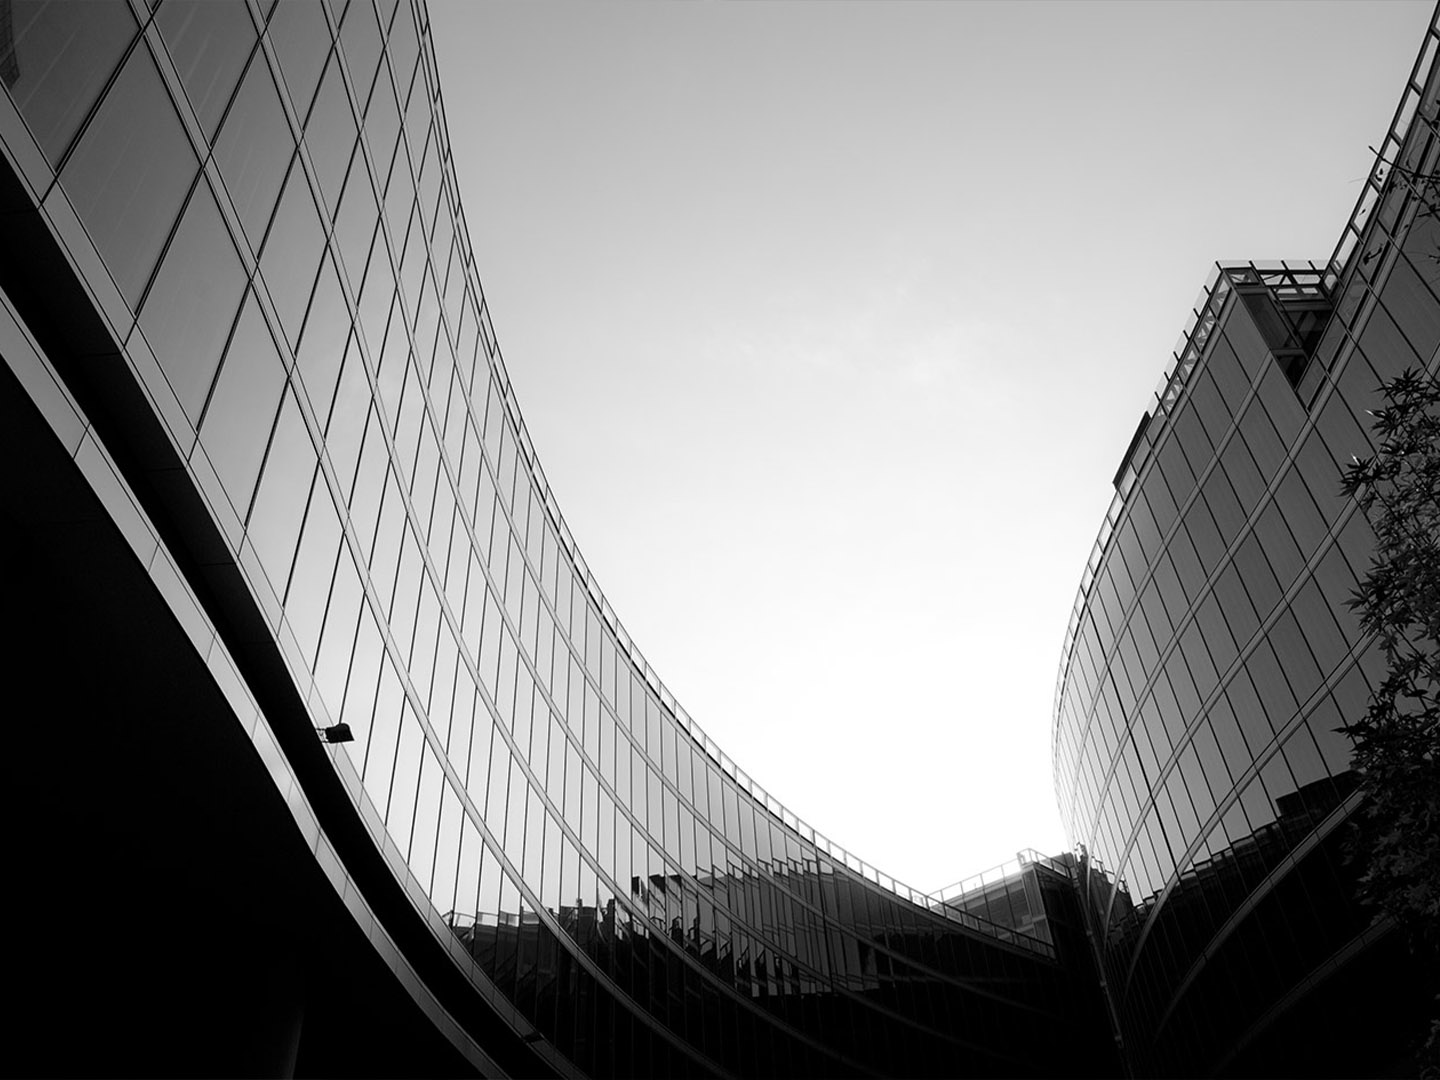 Categorie: Architecture & Interior - Photographer: IVAN MELZI - Location: Palazzo Lombardia, 20124 Milano, MI, Italia